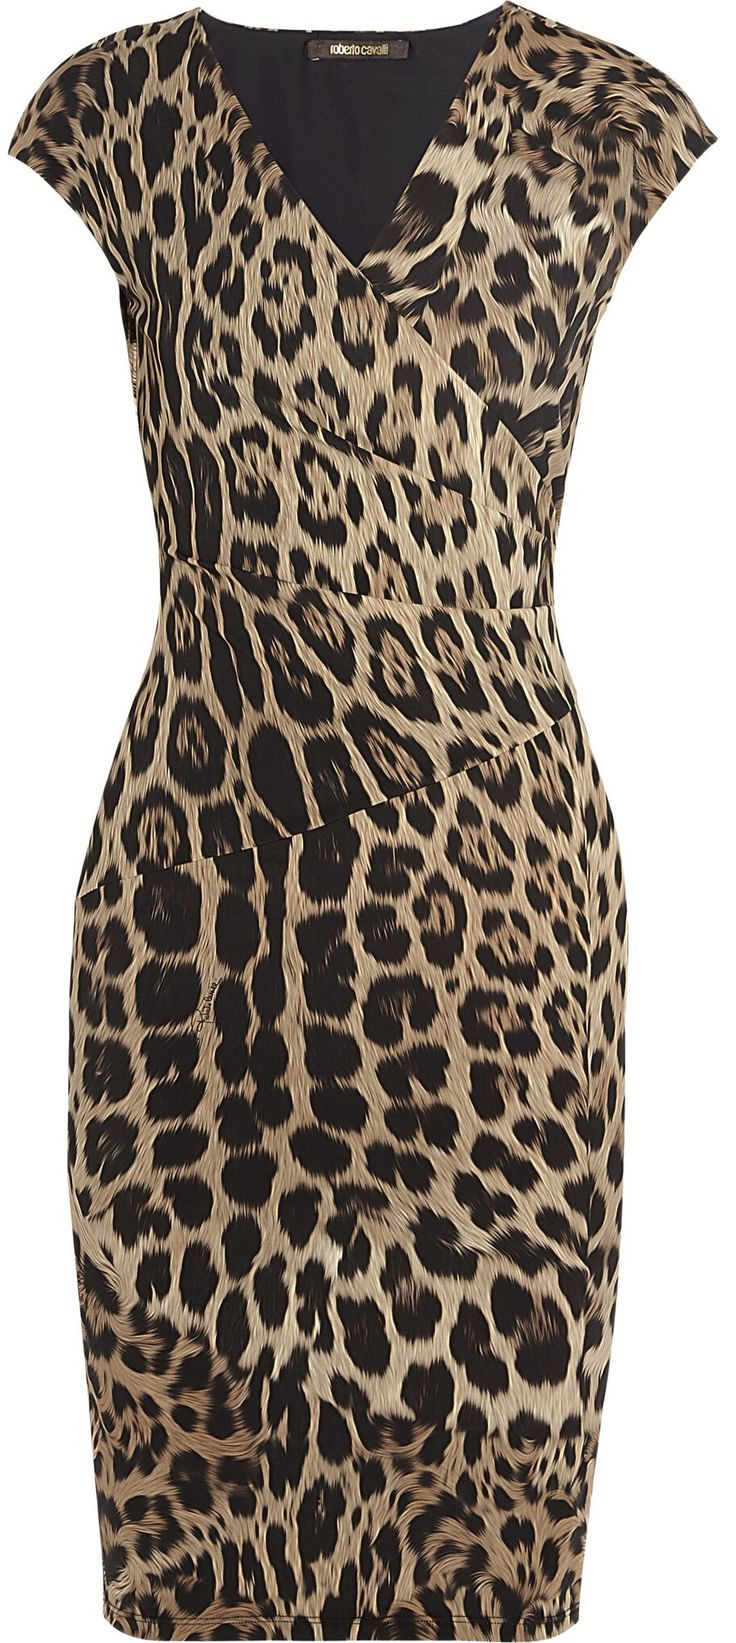 Roberto Cavalli animal print body con dress